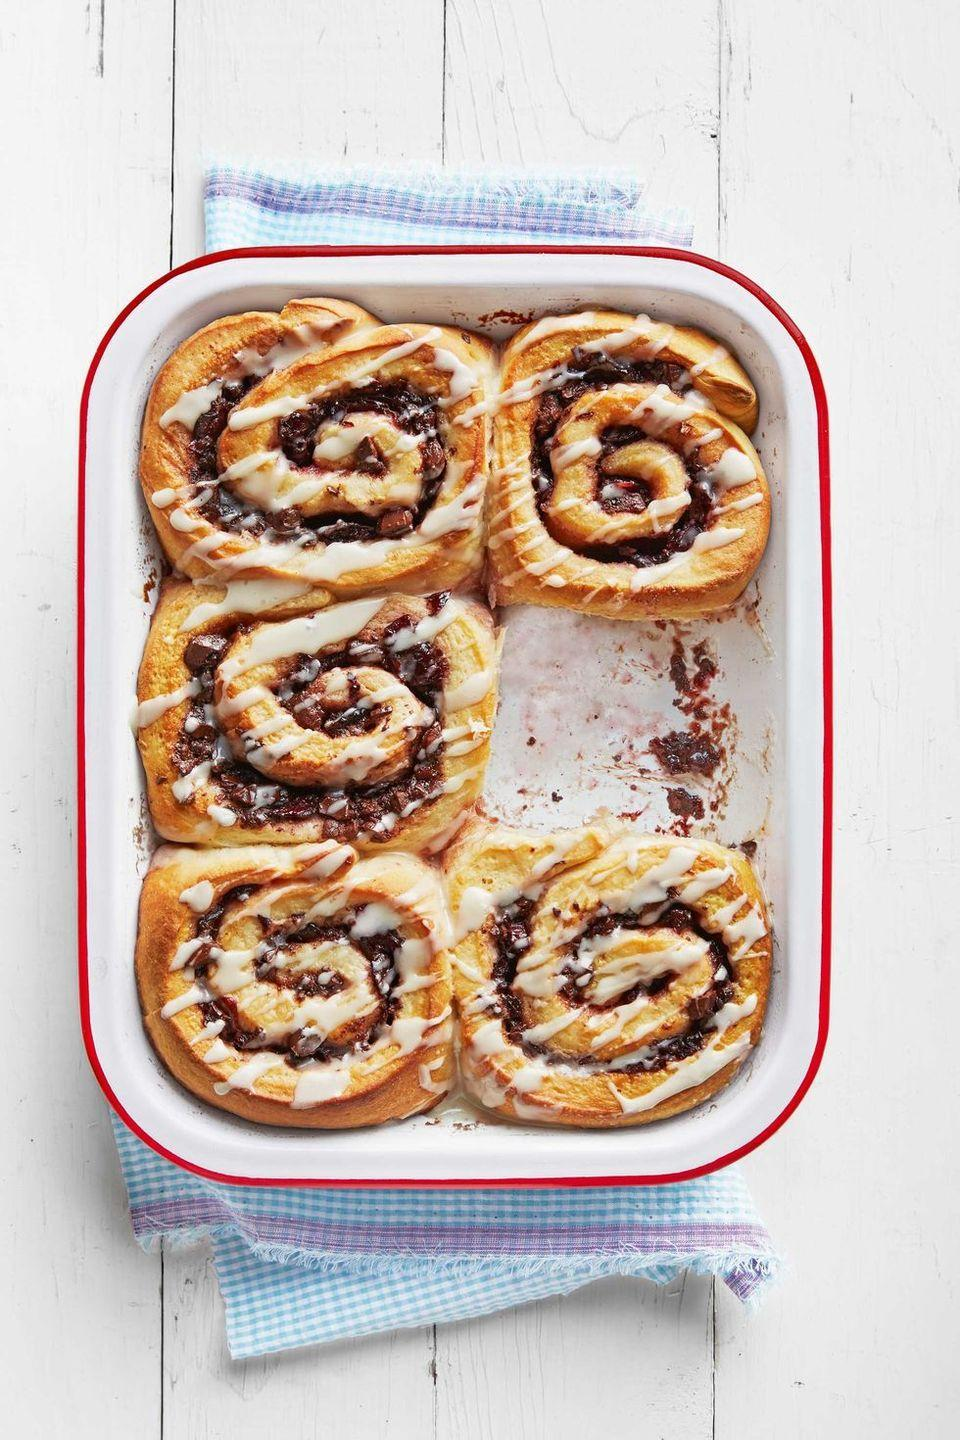 """<p>Savory bittersweet chocolate and sweet cherries take these cinnamon rolls to the next level. Bonus: They can be made the day before.</p><p><strong><a href=""""https://www.countryliving.com/food-drinks/recipes/a38954/chocolate-cherry-cinnamon-rolls-recipe/"""" rel=""""nofollow noopener"""" target=""""_blank"""" data-ylk=""""slk:Get the recipe"""" class=""""link rapid-noclick-resp"""">Get the recipe</a>. </strong> </p>"""